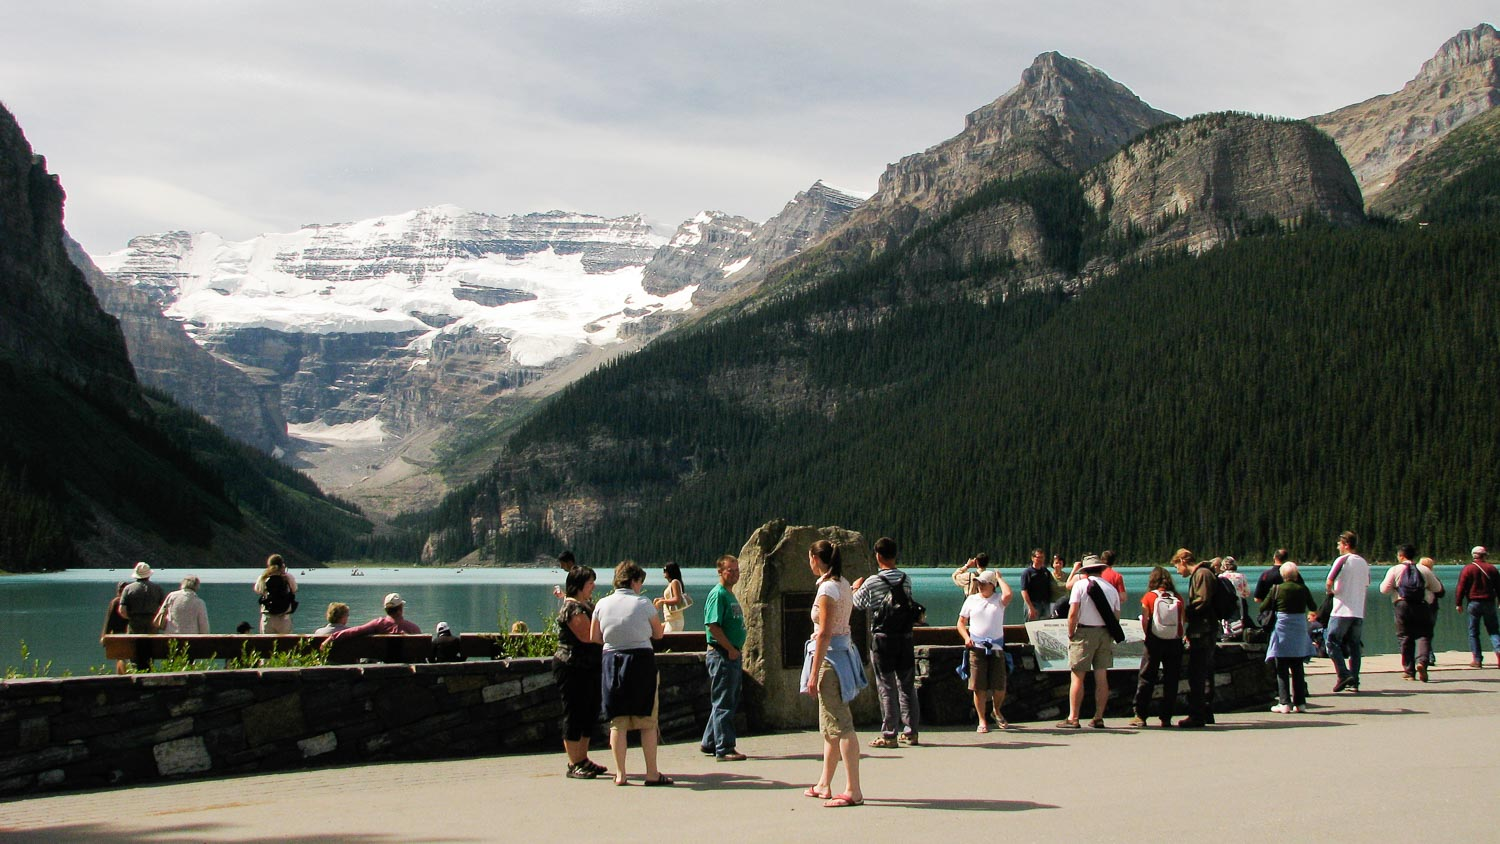 Lake Louise Banff NP